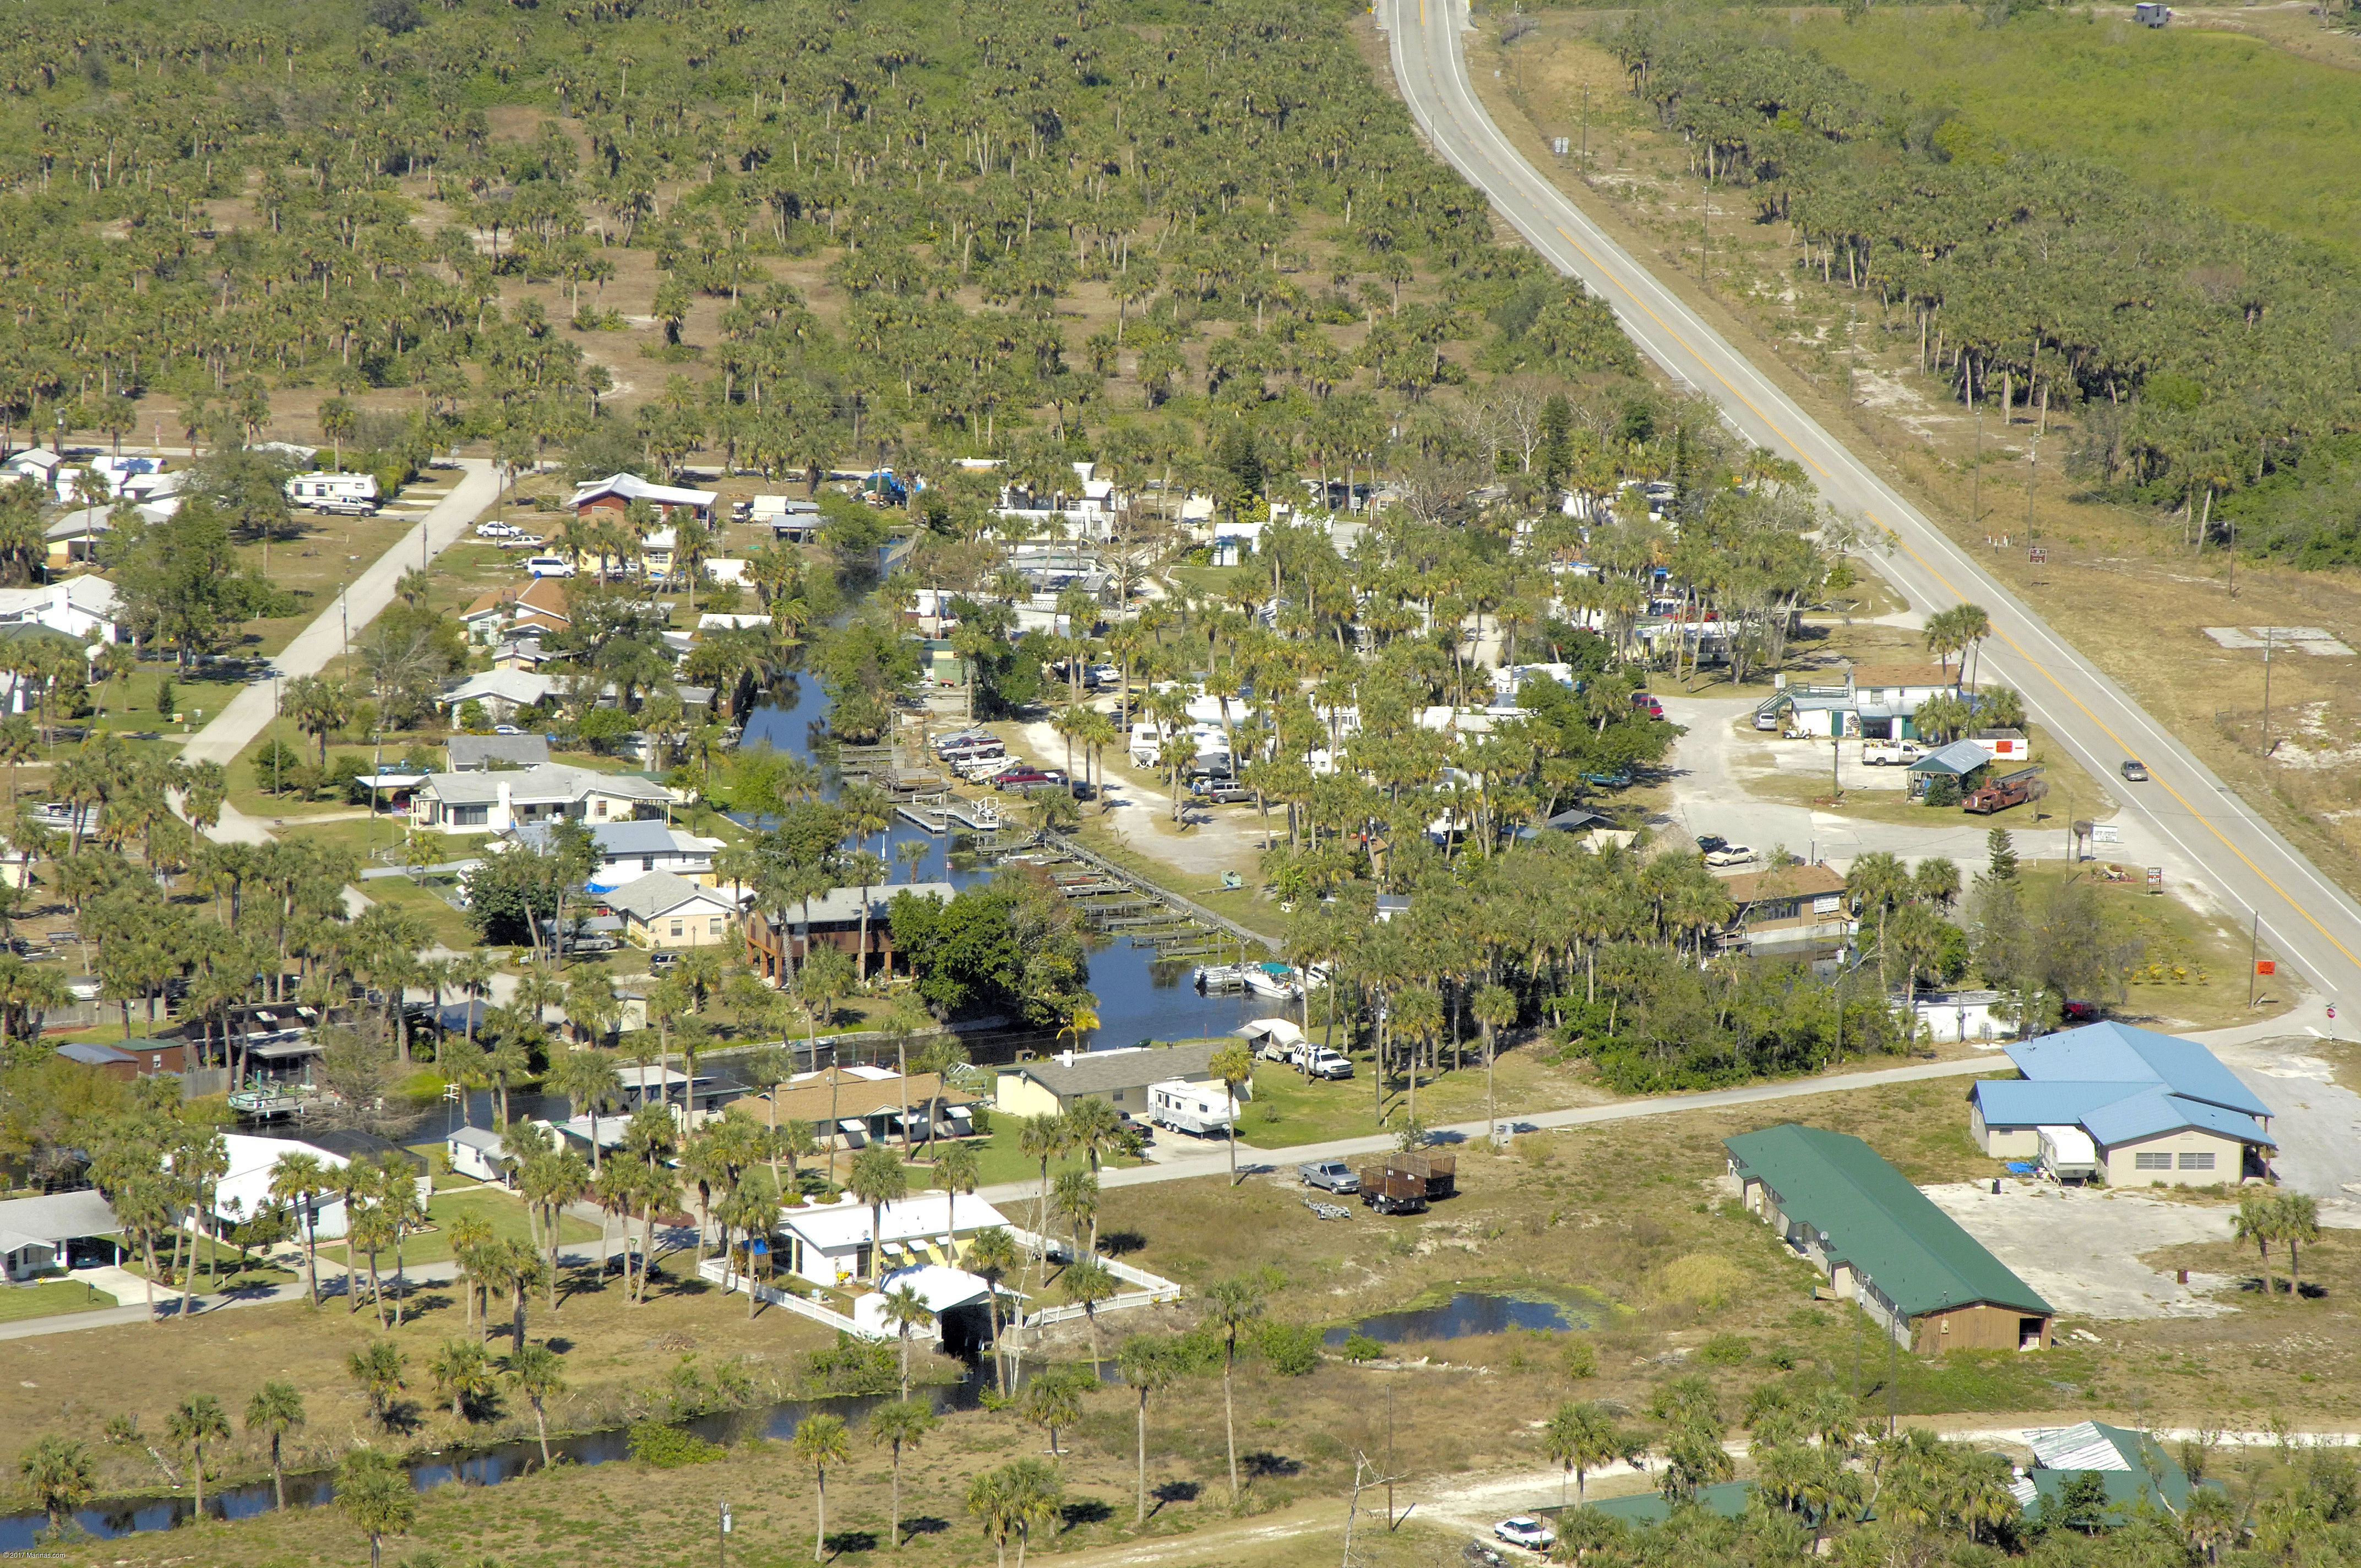 J s fish camp in okeechobee fl united states marina for Lake okeechobee fish camps